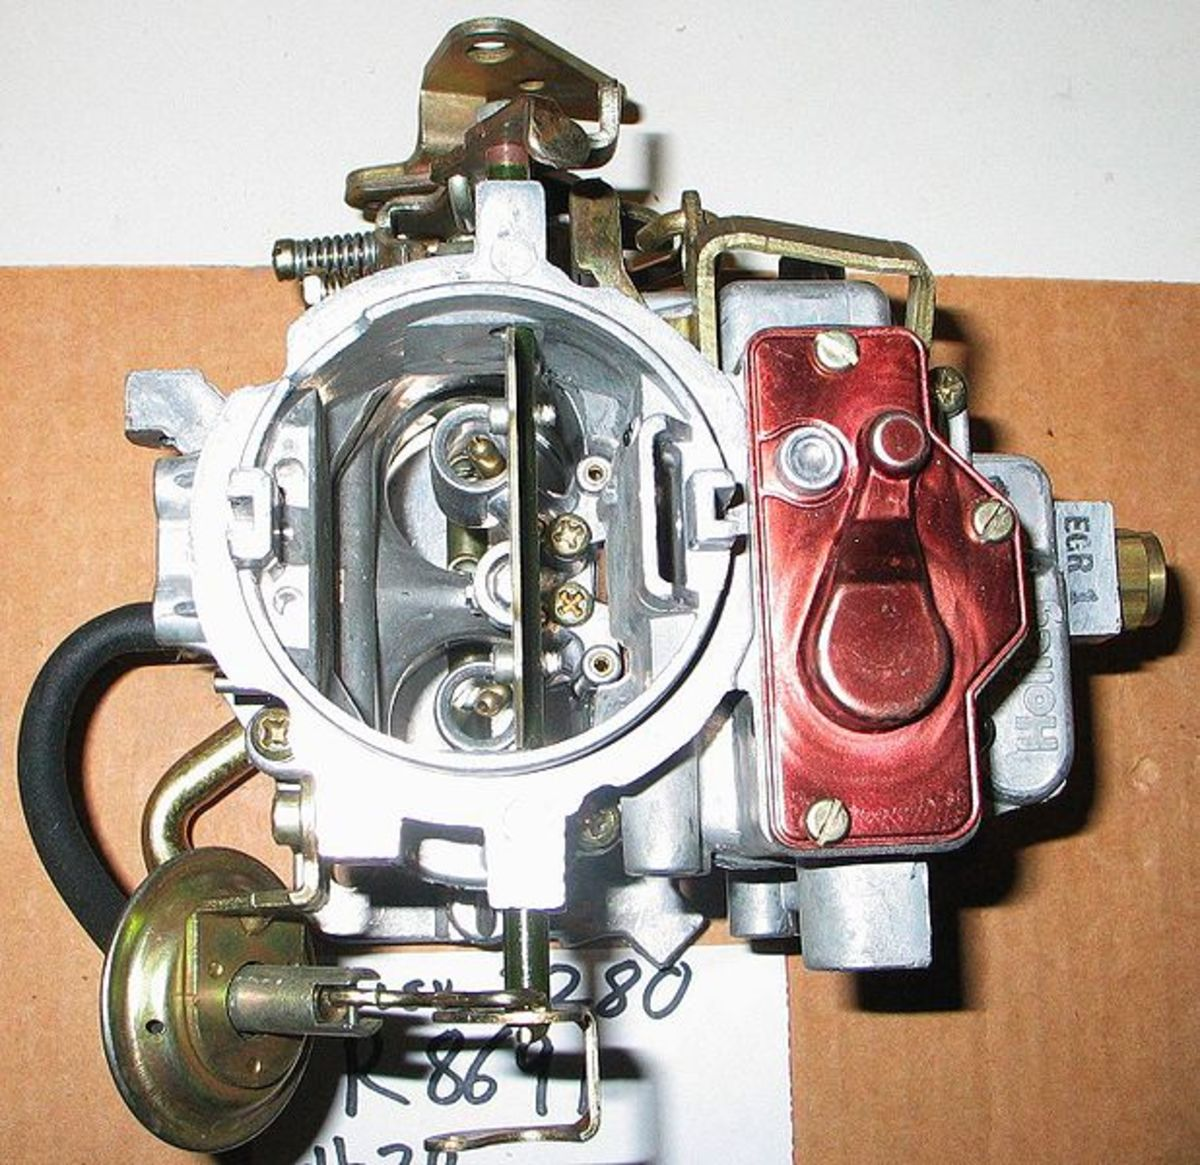 Remove carbon buildup from the throttle bore and valve.